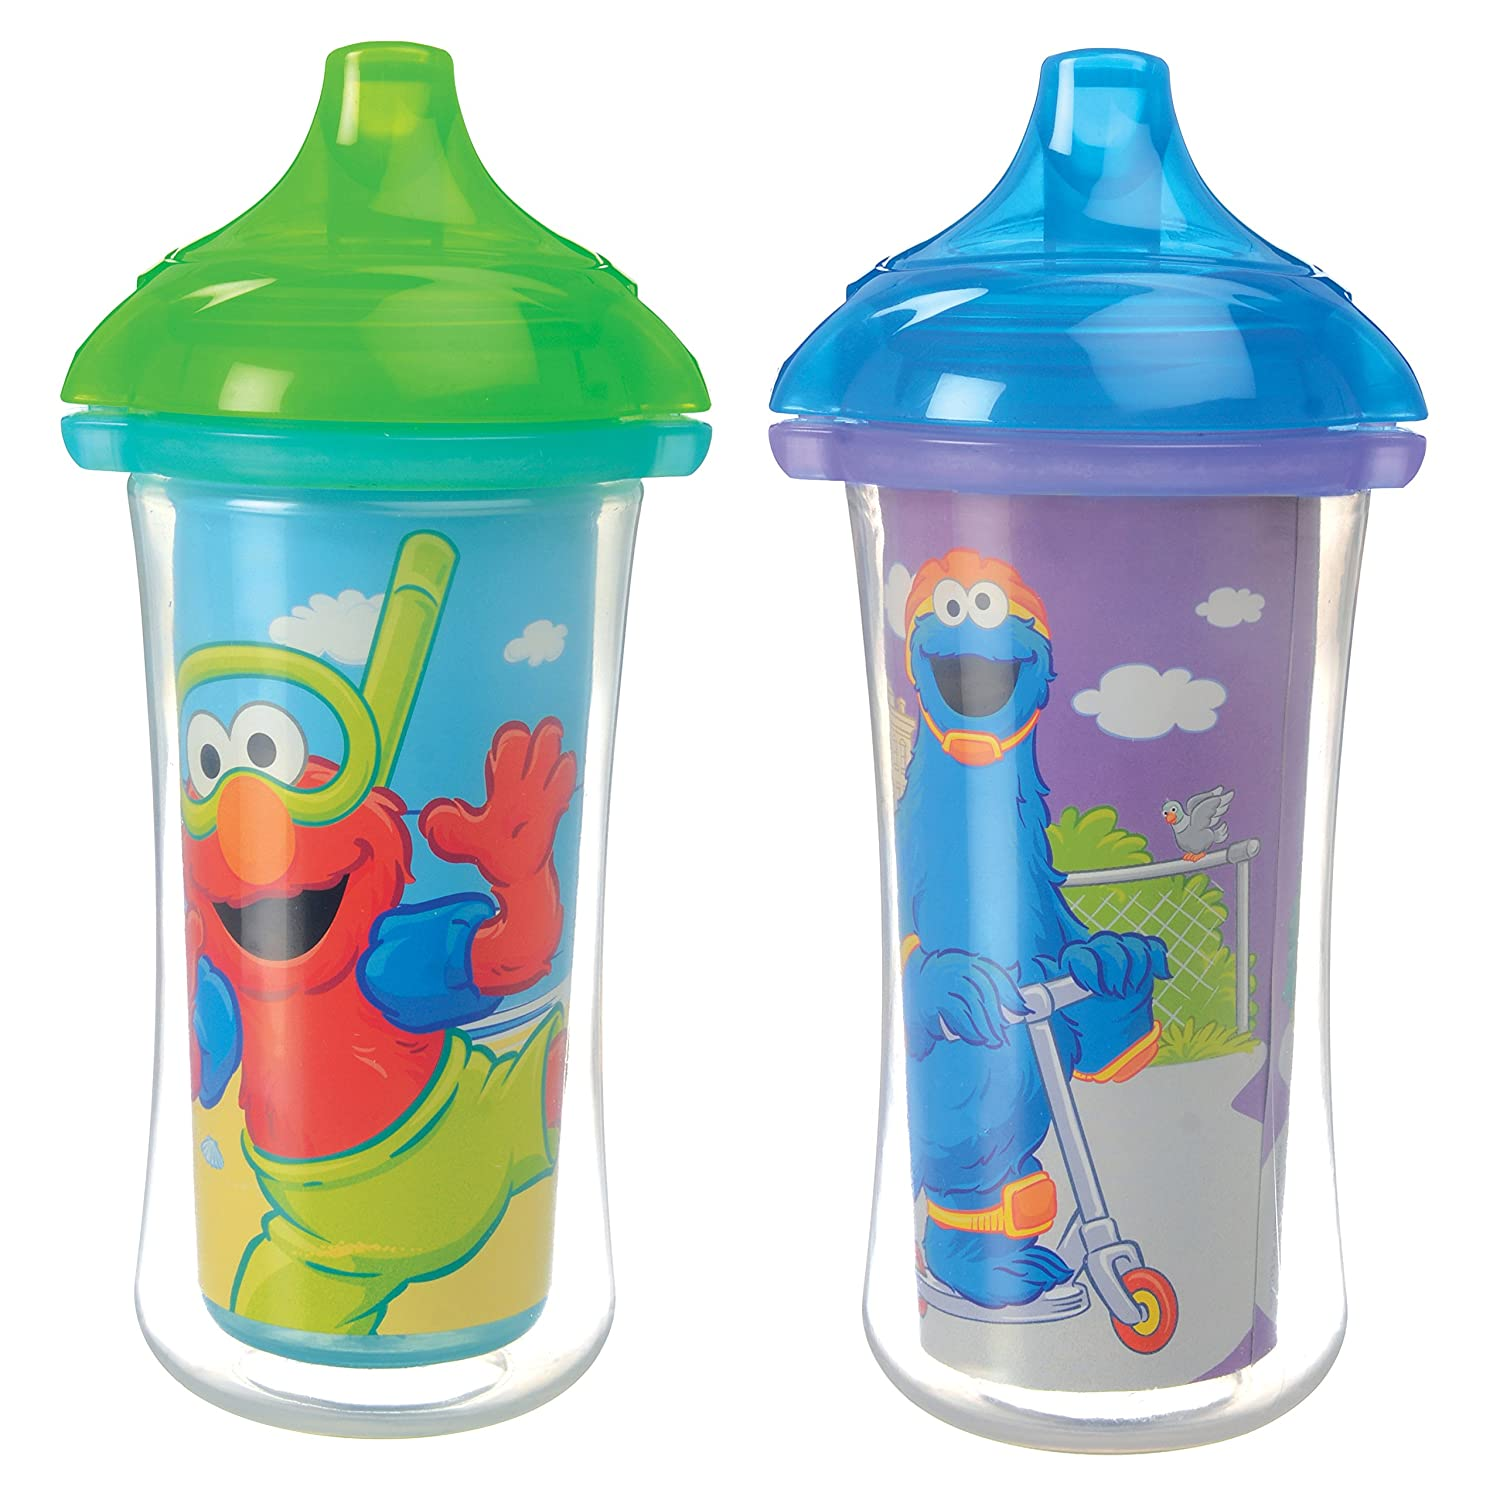 Munchkin Sesame Street Click Lock Insulated Sippy Cup, 9 oz., Colors May Vary, 2 Count